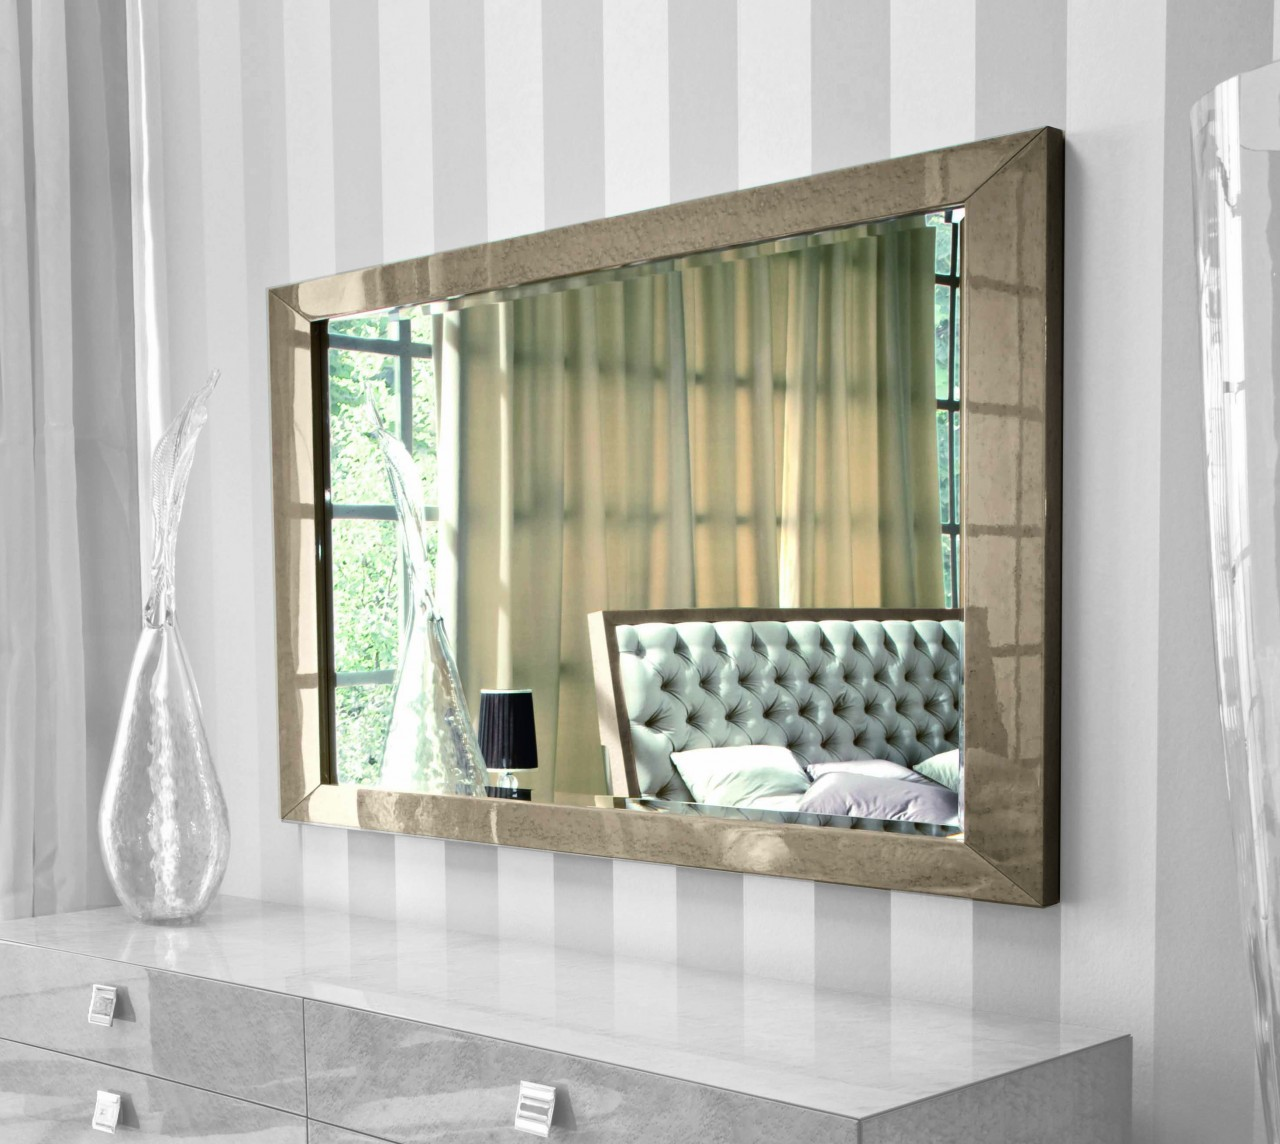 Giorgio Sunrise Bedroom Wall Mirror 360. Sunrise Bedroom Wall Mirror 360